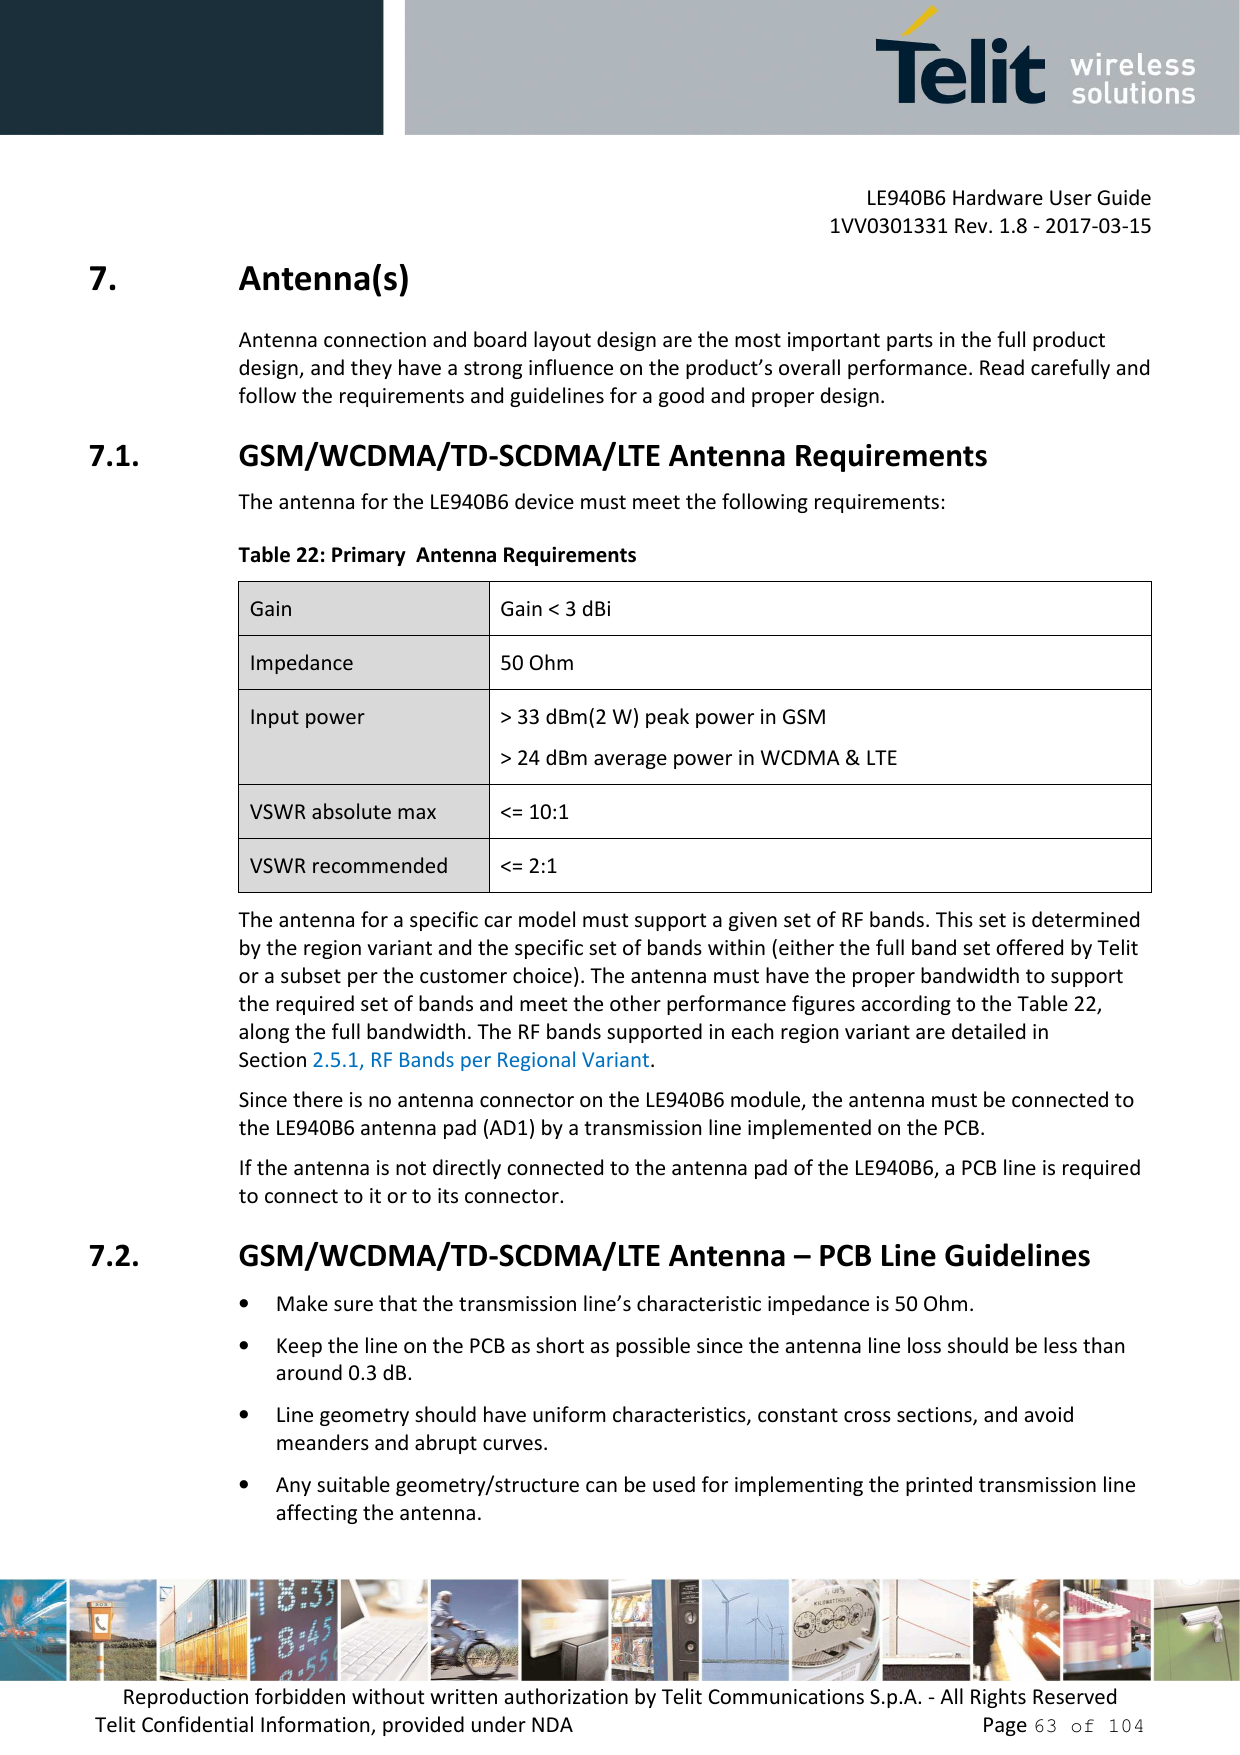 LE940B6 Hardware User Guide     1VV0301331 Rev. 1.8 - 2017-03-15 Reproduction forbidden without written authorization by Telit Communications S.p.A. - All Rights Reserved Telit Confidential Information, provided under NDA                 Page 63 of 104 7. Antenna(s) Antenna connection and board layout design are the most important parts in the full product design, and they have a strong influence on the product's overall performance. Read carefully and follow the requirements and guidelines for a good and proper design. 7.1. GSM/WCDMA/TD-SCDMA/LTE Antenna Requirements The antenna for the LE940B6 device must meet the following requirements: Table 22: Primary  Antenna Requirements Gain  Gain < 3 dBi Impedance  50 Ohm Input power  > 33 dBm(2 W) peak power in GSM > 24 dBm average power in WCDMA & LTE VSWR absolute max  <= 10:1 VSWR recommended  <= 2:1 The antenna for a specific car model must support a given set of RF bands. This set is determined by the region variant and the specific set of bands within (either the full band set offered by Telit or a subset per the customer choice). The antenna must have the proper bandwidth to support the required set of bands and meet the other performance figures according to the Table 22, along the full bandwidth. The RF bands supported in each region variant are detailed in Section 2.5.1, RF Bands per Regional Variant.  Since there is no antenna connector on the LE940B6 module, the antenna must be connected to the LE940B6 antenna pad (AD1) by a transmission line implemented on the PCB. If the antenna is not directly connected to the antenna pad of the LE940B6, a PCB line is required to connect to it or to its connector. 7.2. GSM/WCDMA/TD-SCDMA/LTE Antenna – PCB Line Guidelines • Make sure that the transmission line's characteristic impedance is 50 Ohm. • Keep the line on the PCB as short as possible since the antenna line loss should be less than around 0.3 dB. • Line geometry should have uniform characteristics, constant cross s